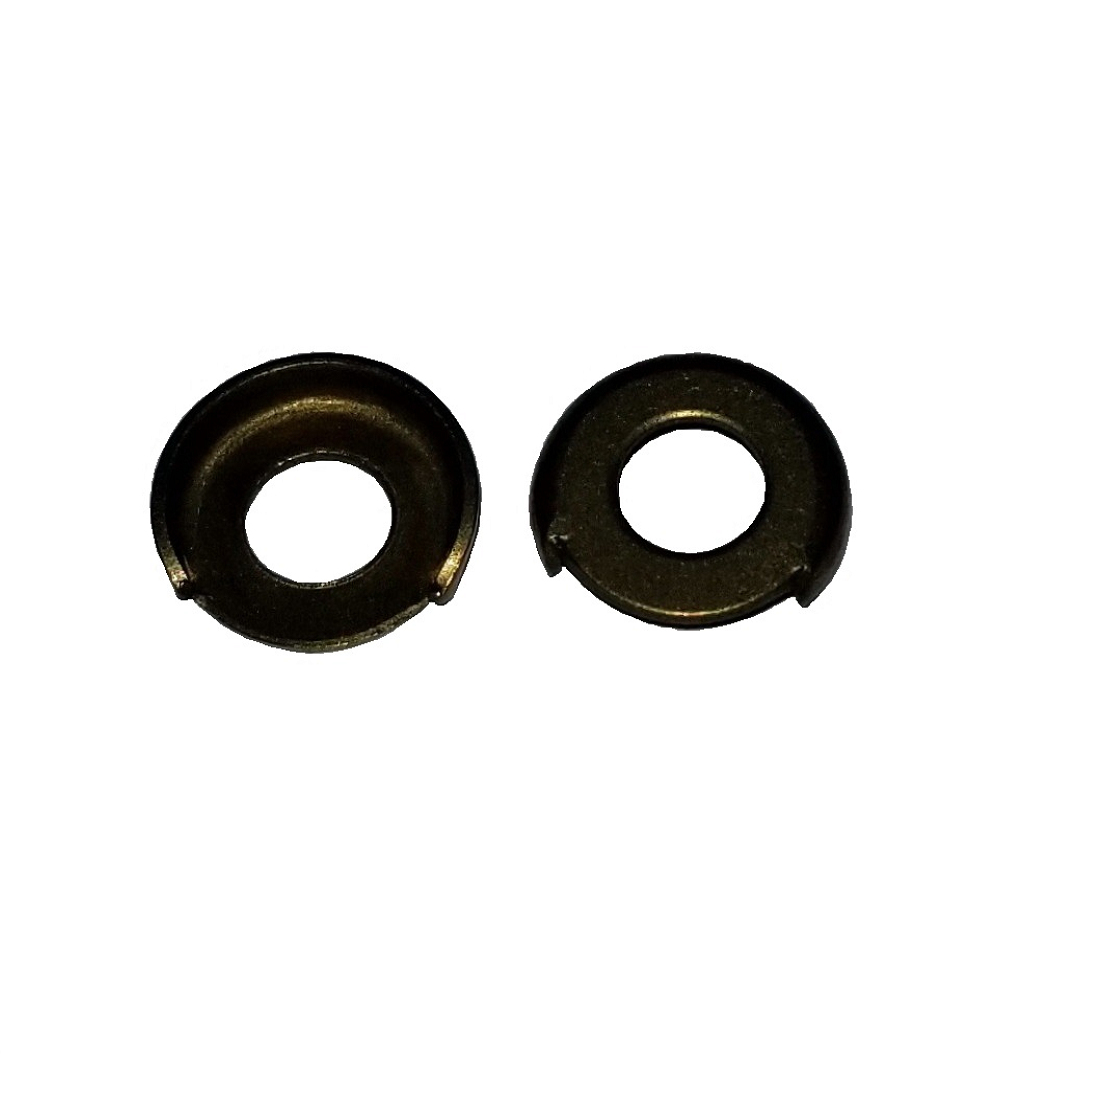 Terminal Cup Washer - 0.171 ID, 0.350 OD, 0.020 Thick, Brass